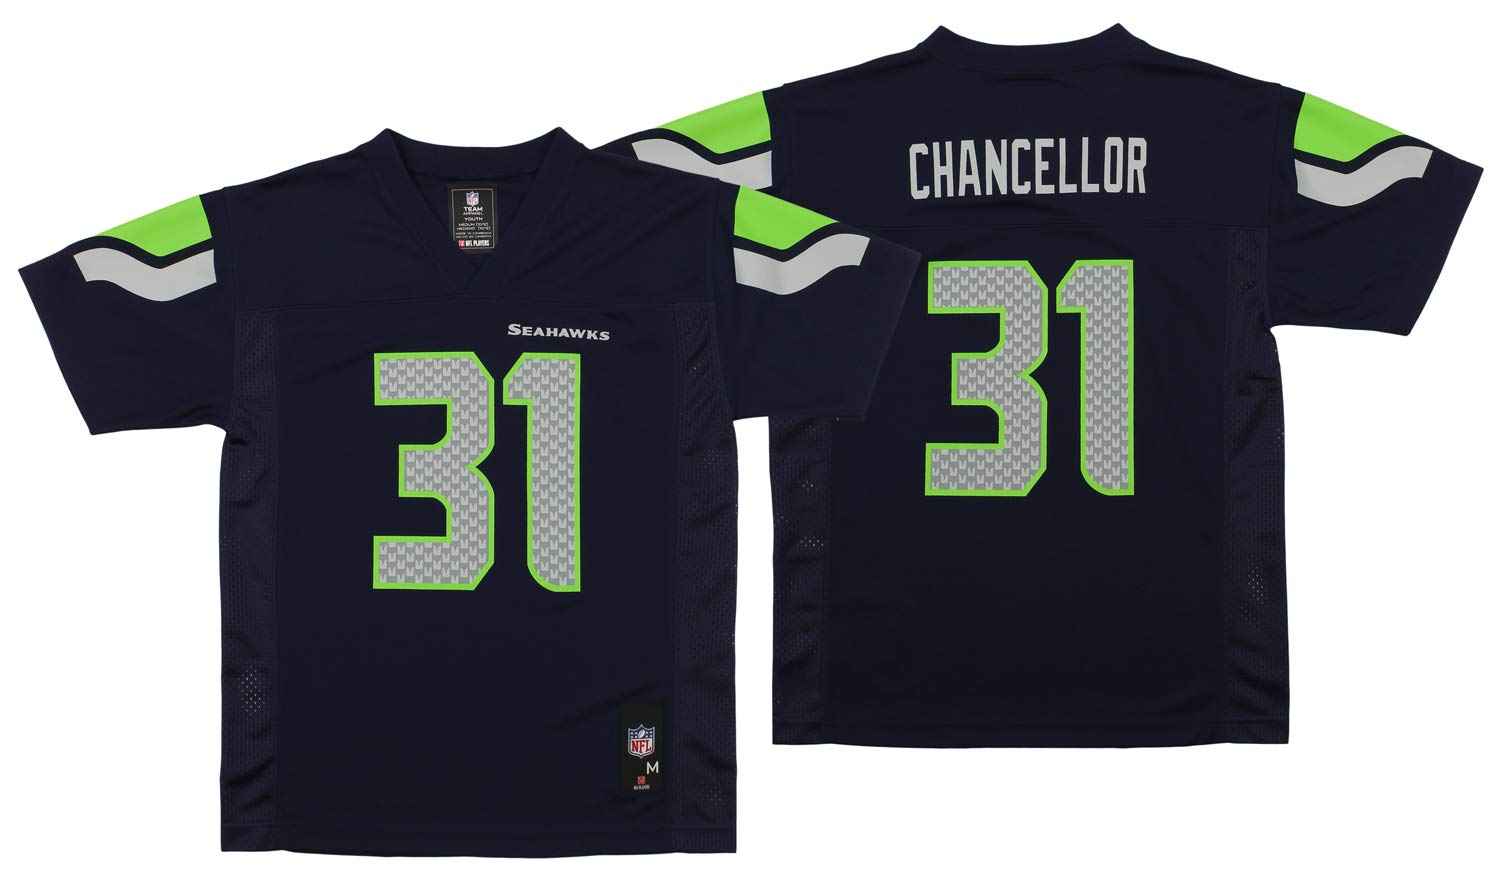 0f82d46e3 Amazon.com : NEW Seattle Seahawks KAM CHANCELLOR #31 Navy Blue Youth Boys  NFL Football Jersey Size XL 18-20 X-Large : Sports & Outdoors